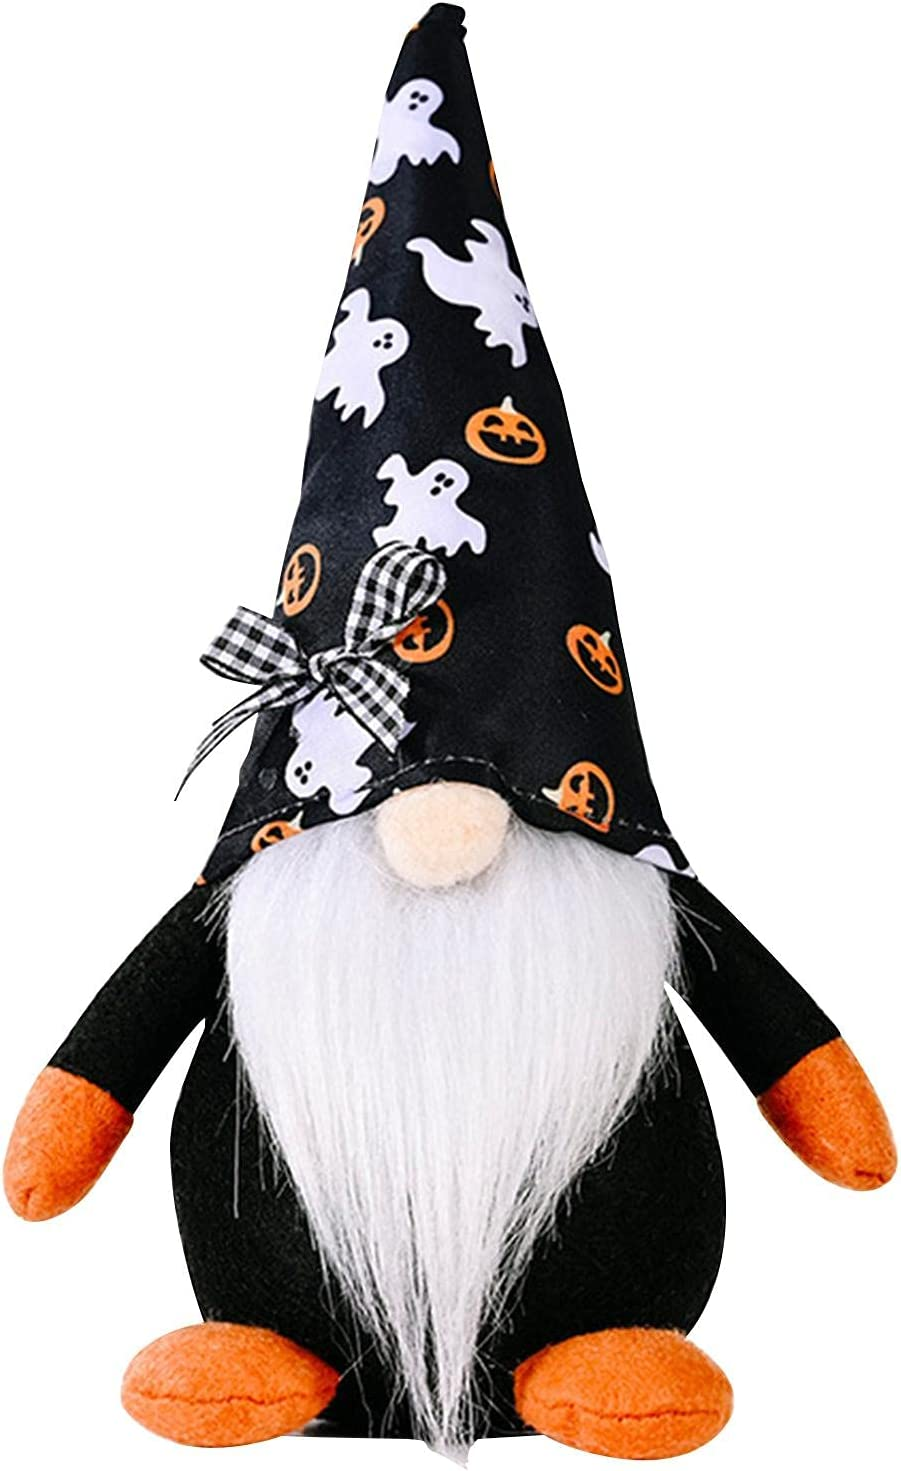 Qserd 1 Pcs Gnome Doll Halloween Summer Kitchen Plush Elf All items in the Max 47% OFF store Gnomes